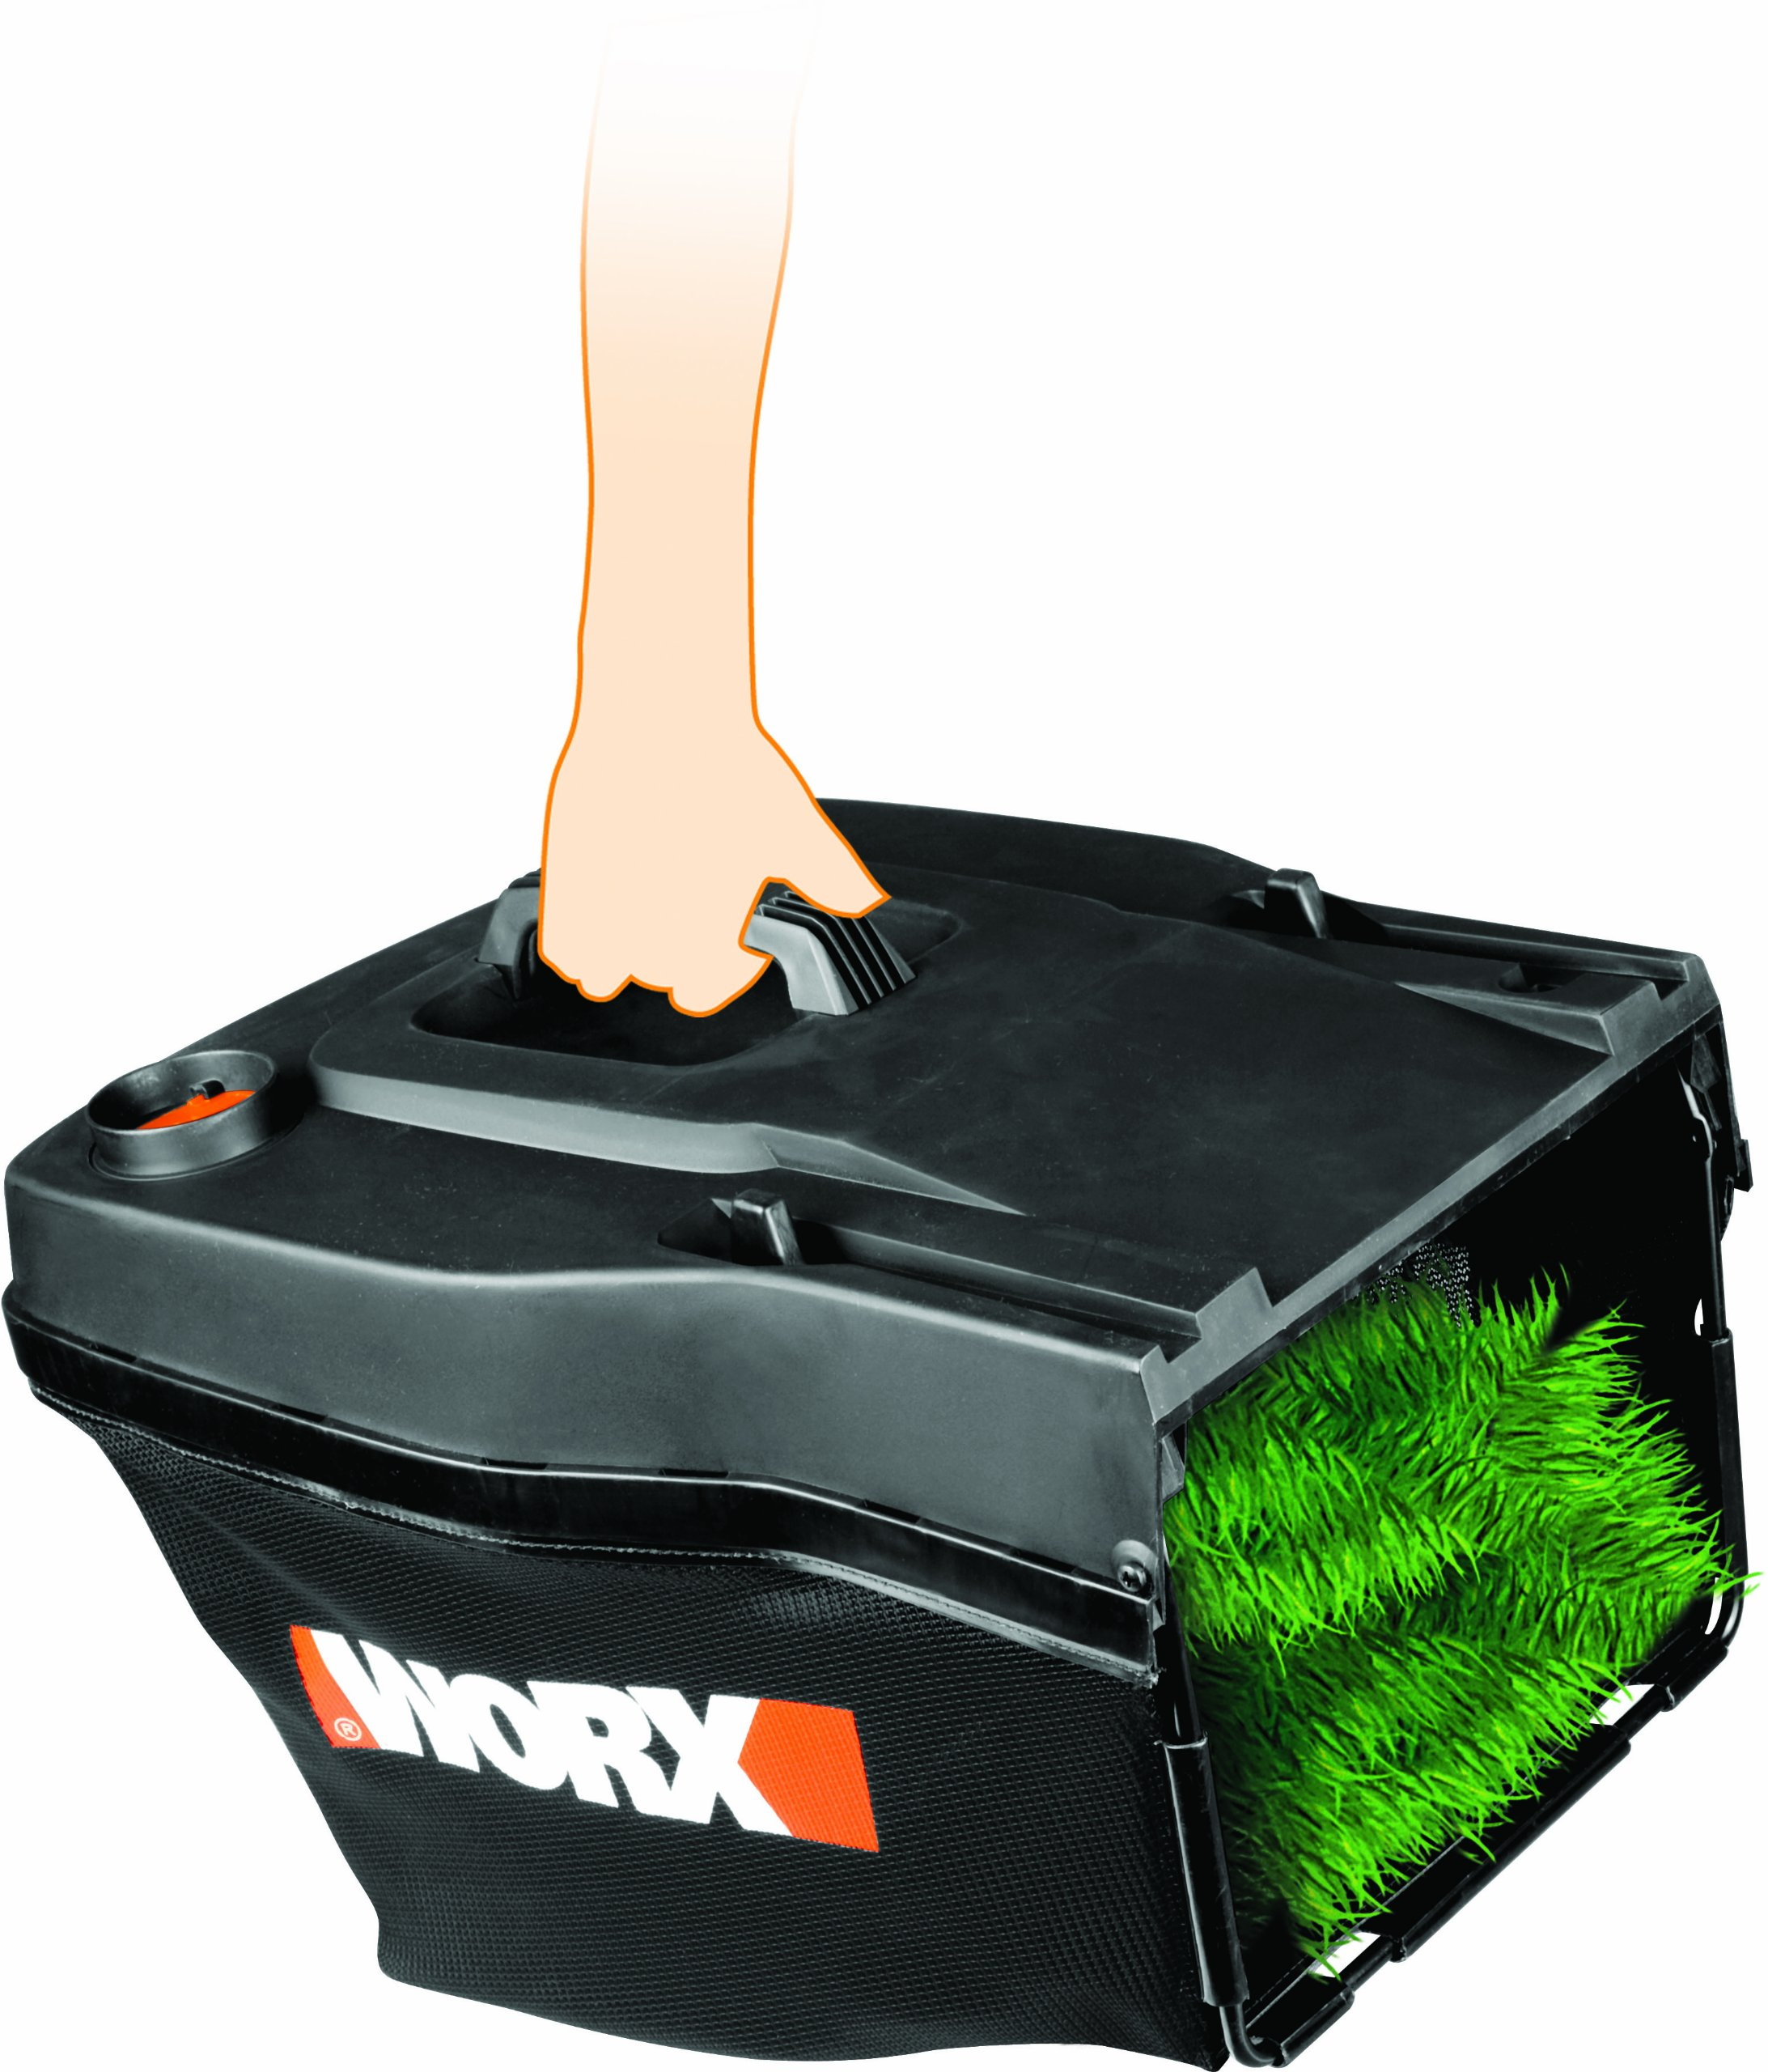 WORX 50021832 Replacement Grass Catcher Assembly for WG775, WG782, WG783 Electric Lawn Mowers